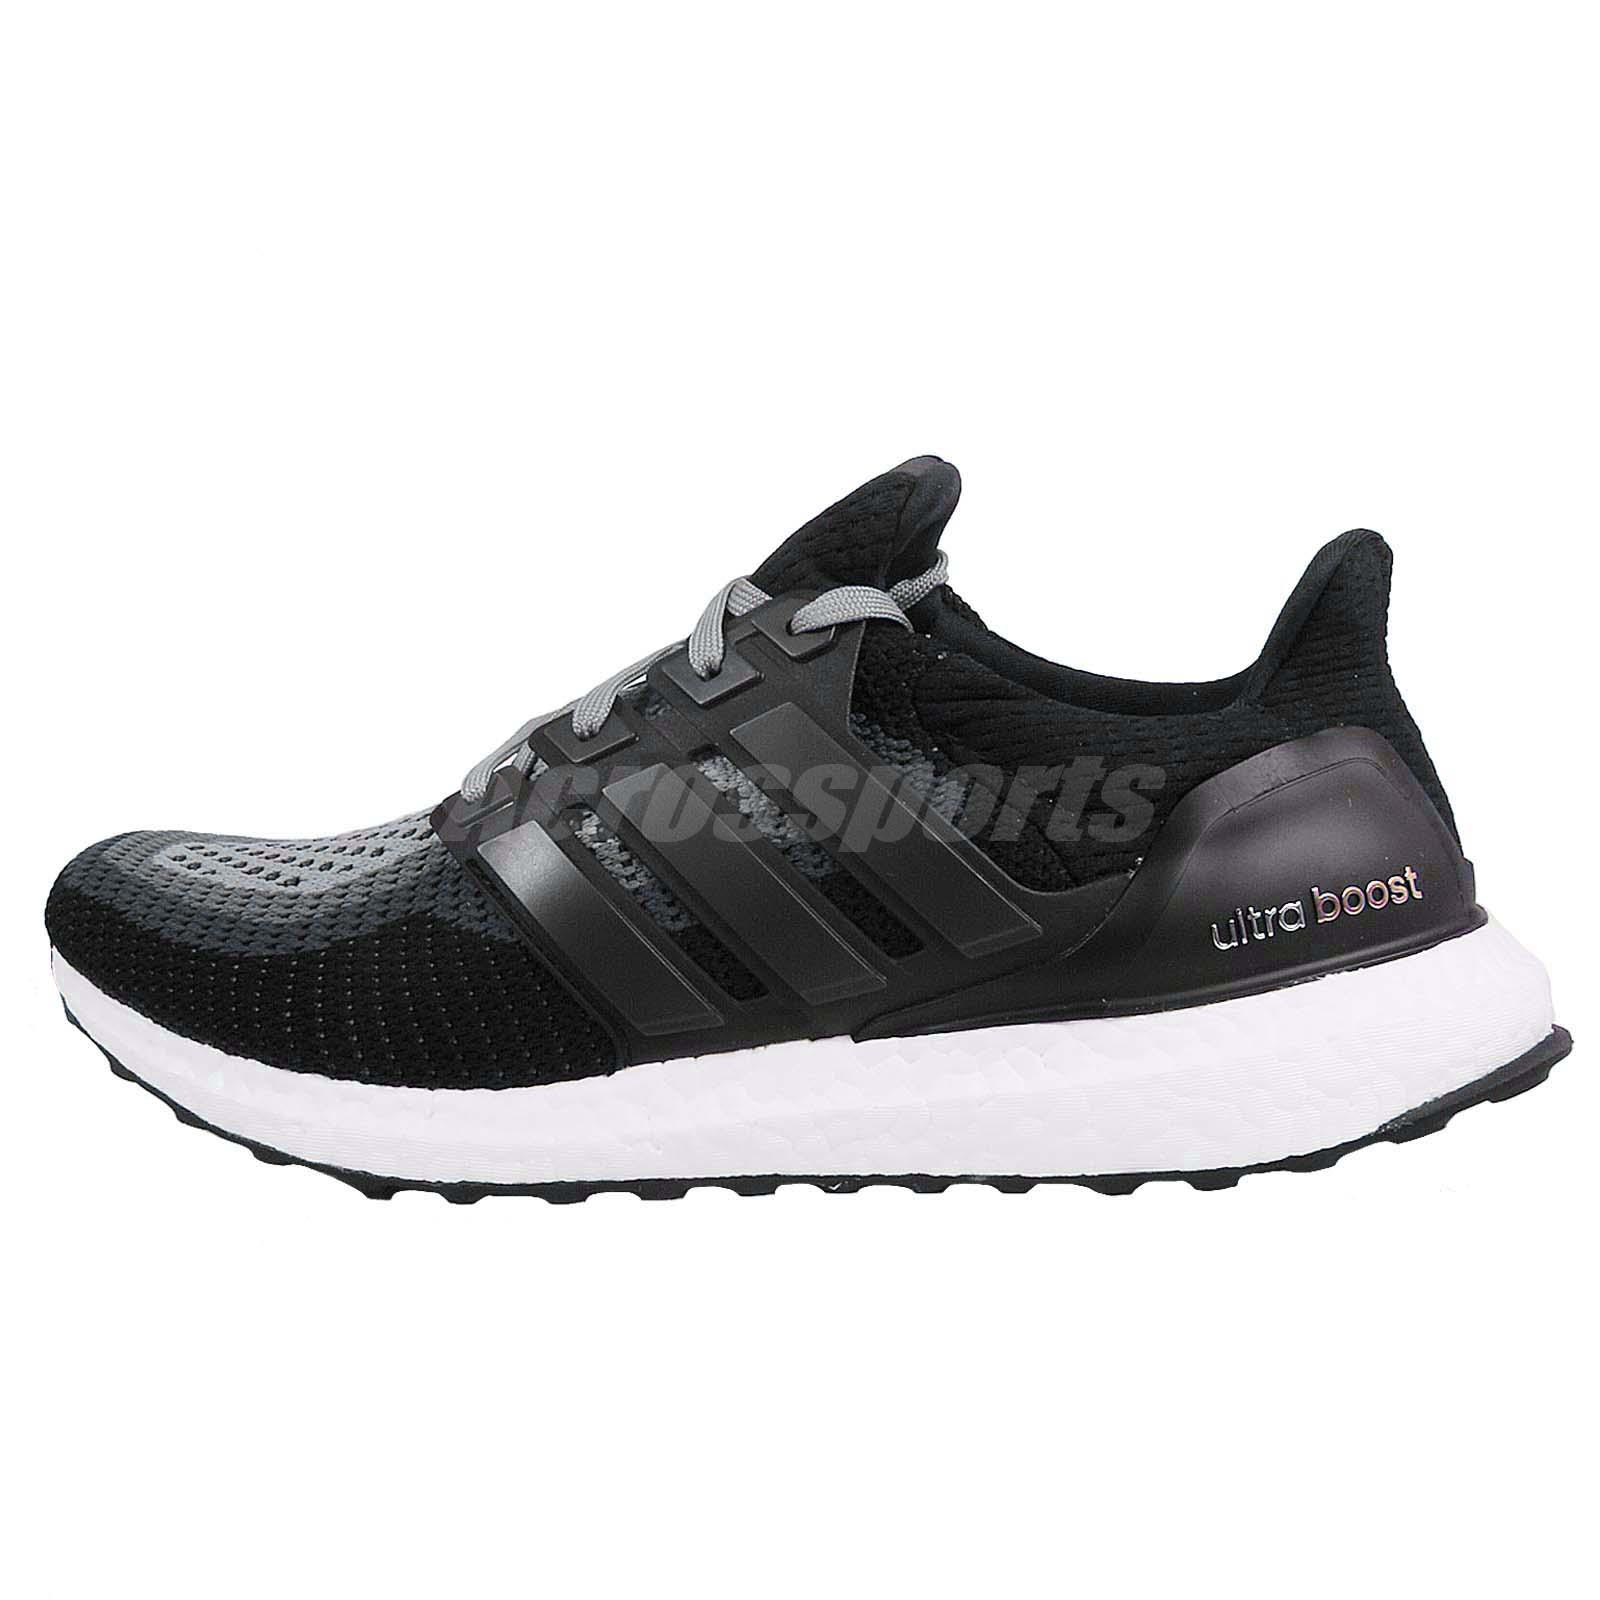 adidas Ultra Boost M Black Grey White Mens Running Shoes ...